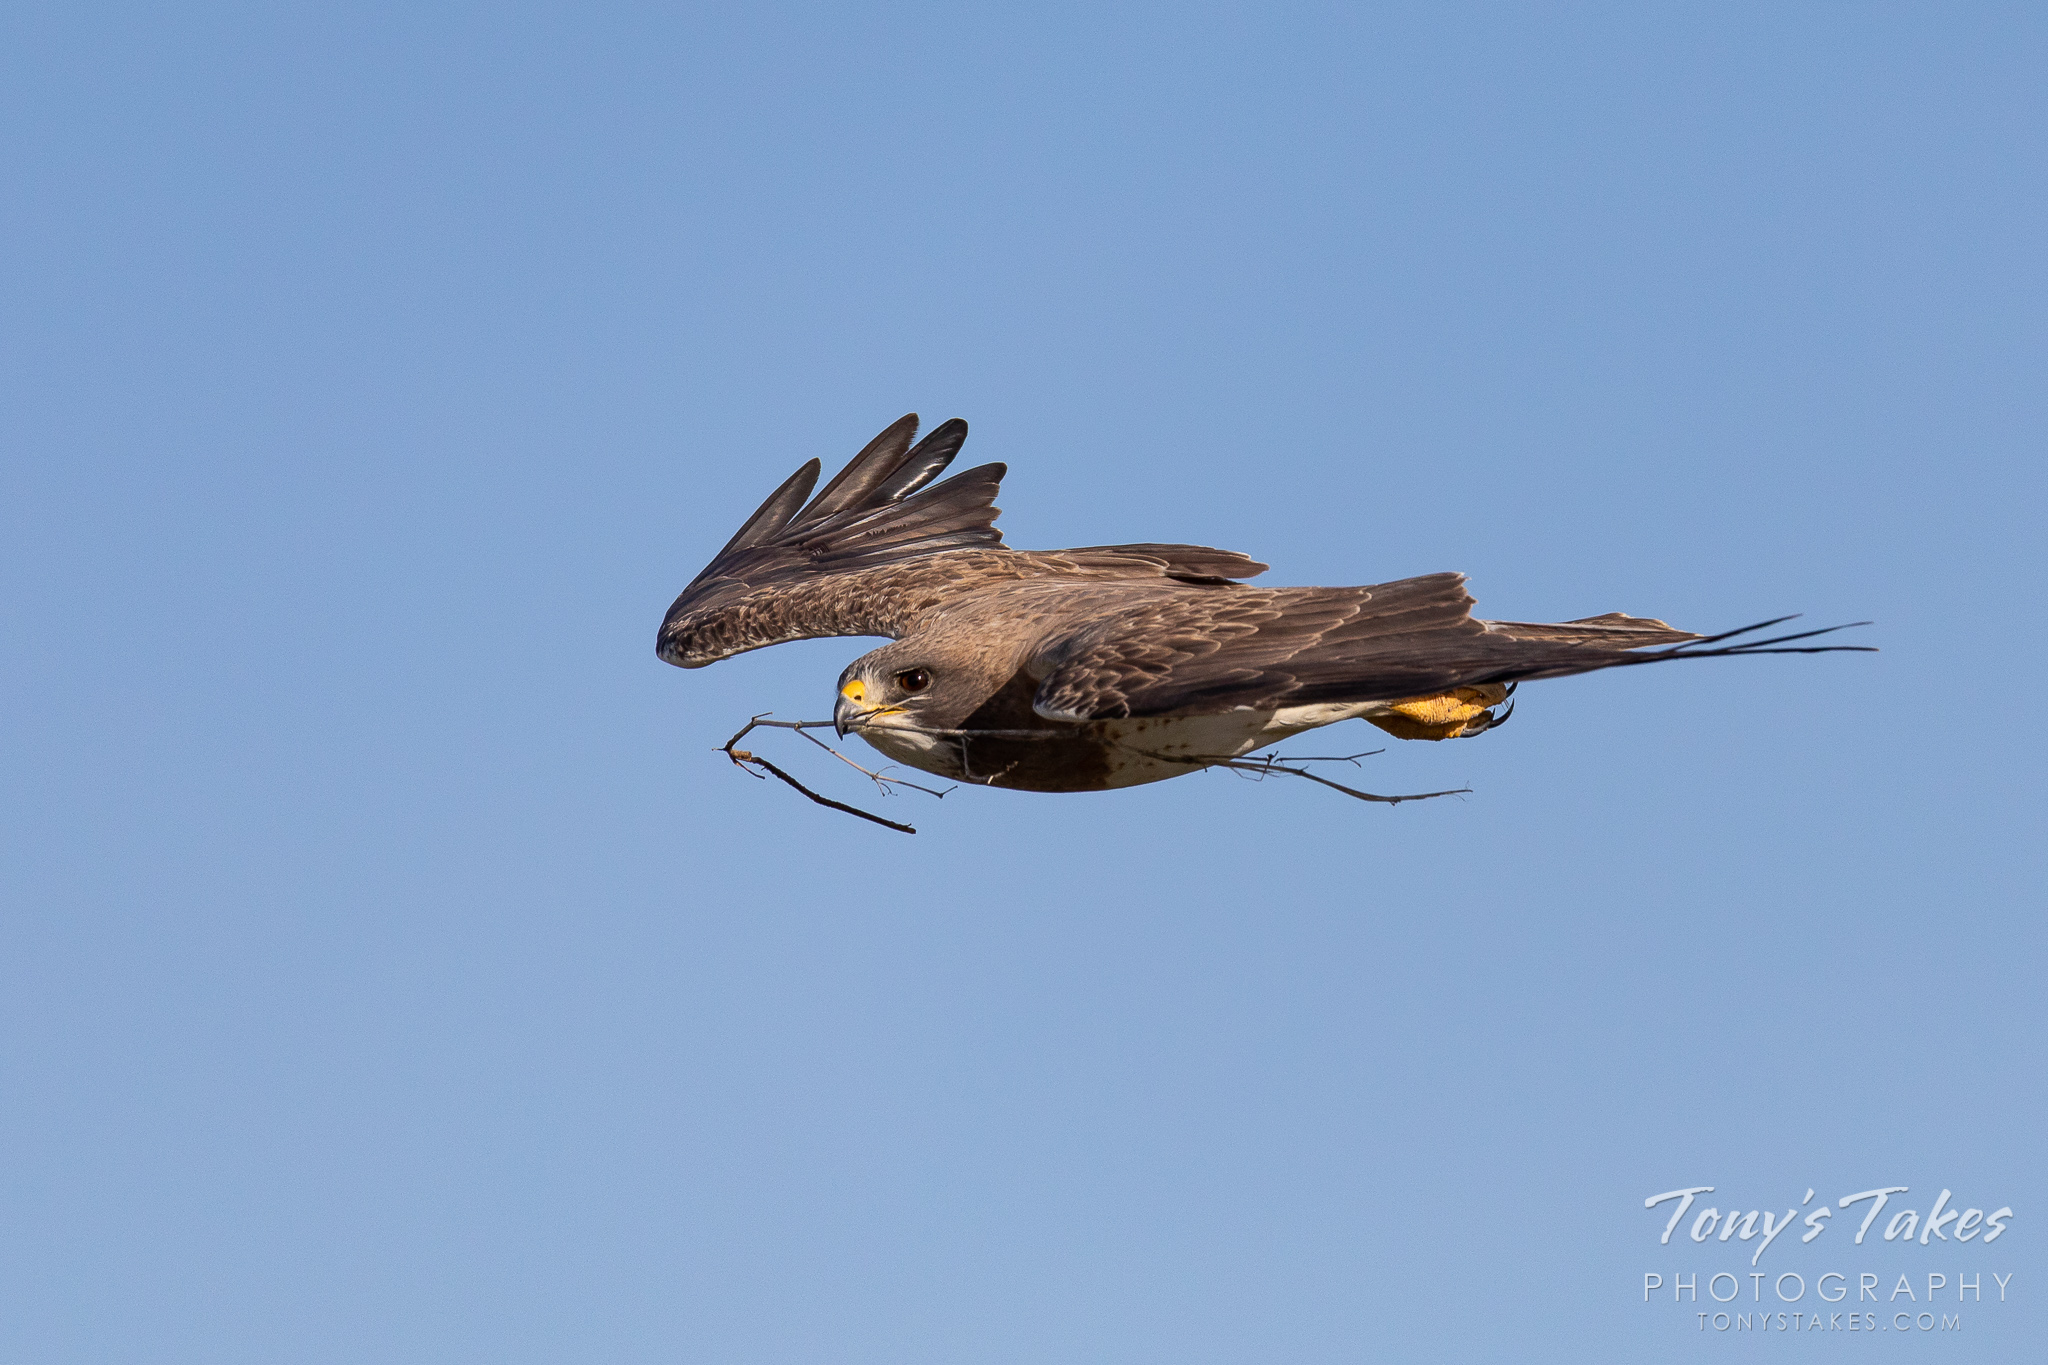 A Swainson's hawk returns to its nest with some building material in its beak. (© Tony's Takes)